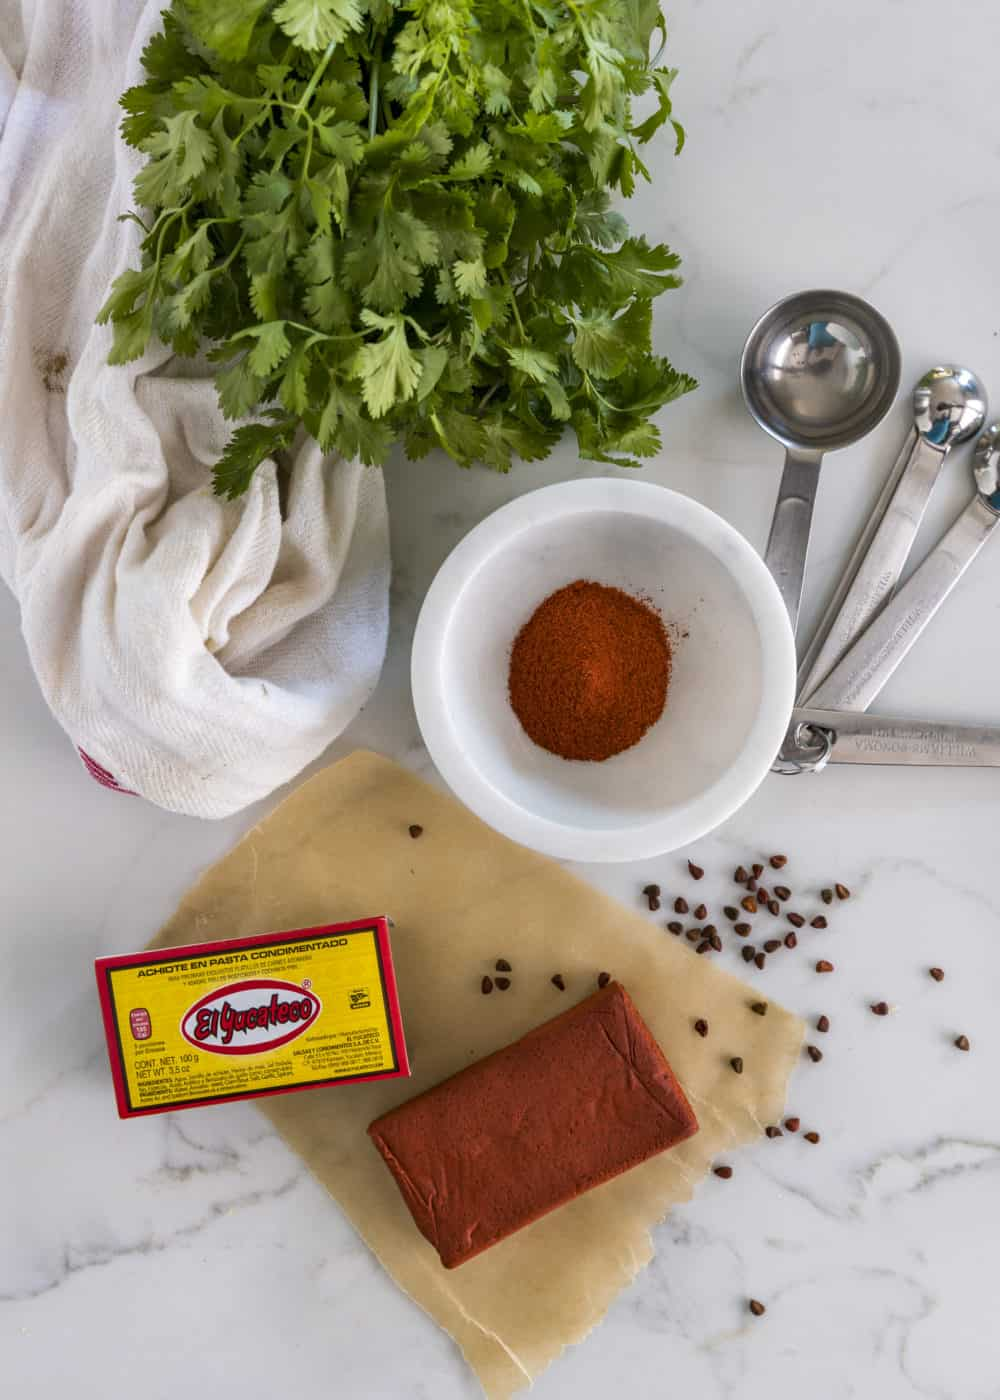 overhead image: block of achiote paste on counter with small bowl of achiote powder and bunch of cilantro